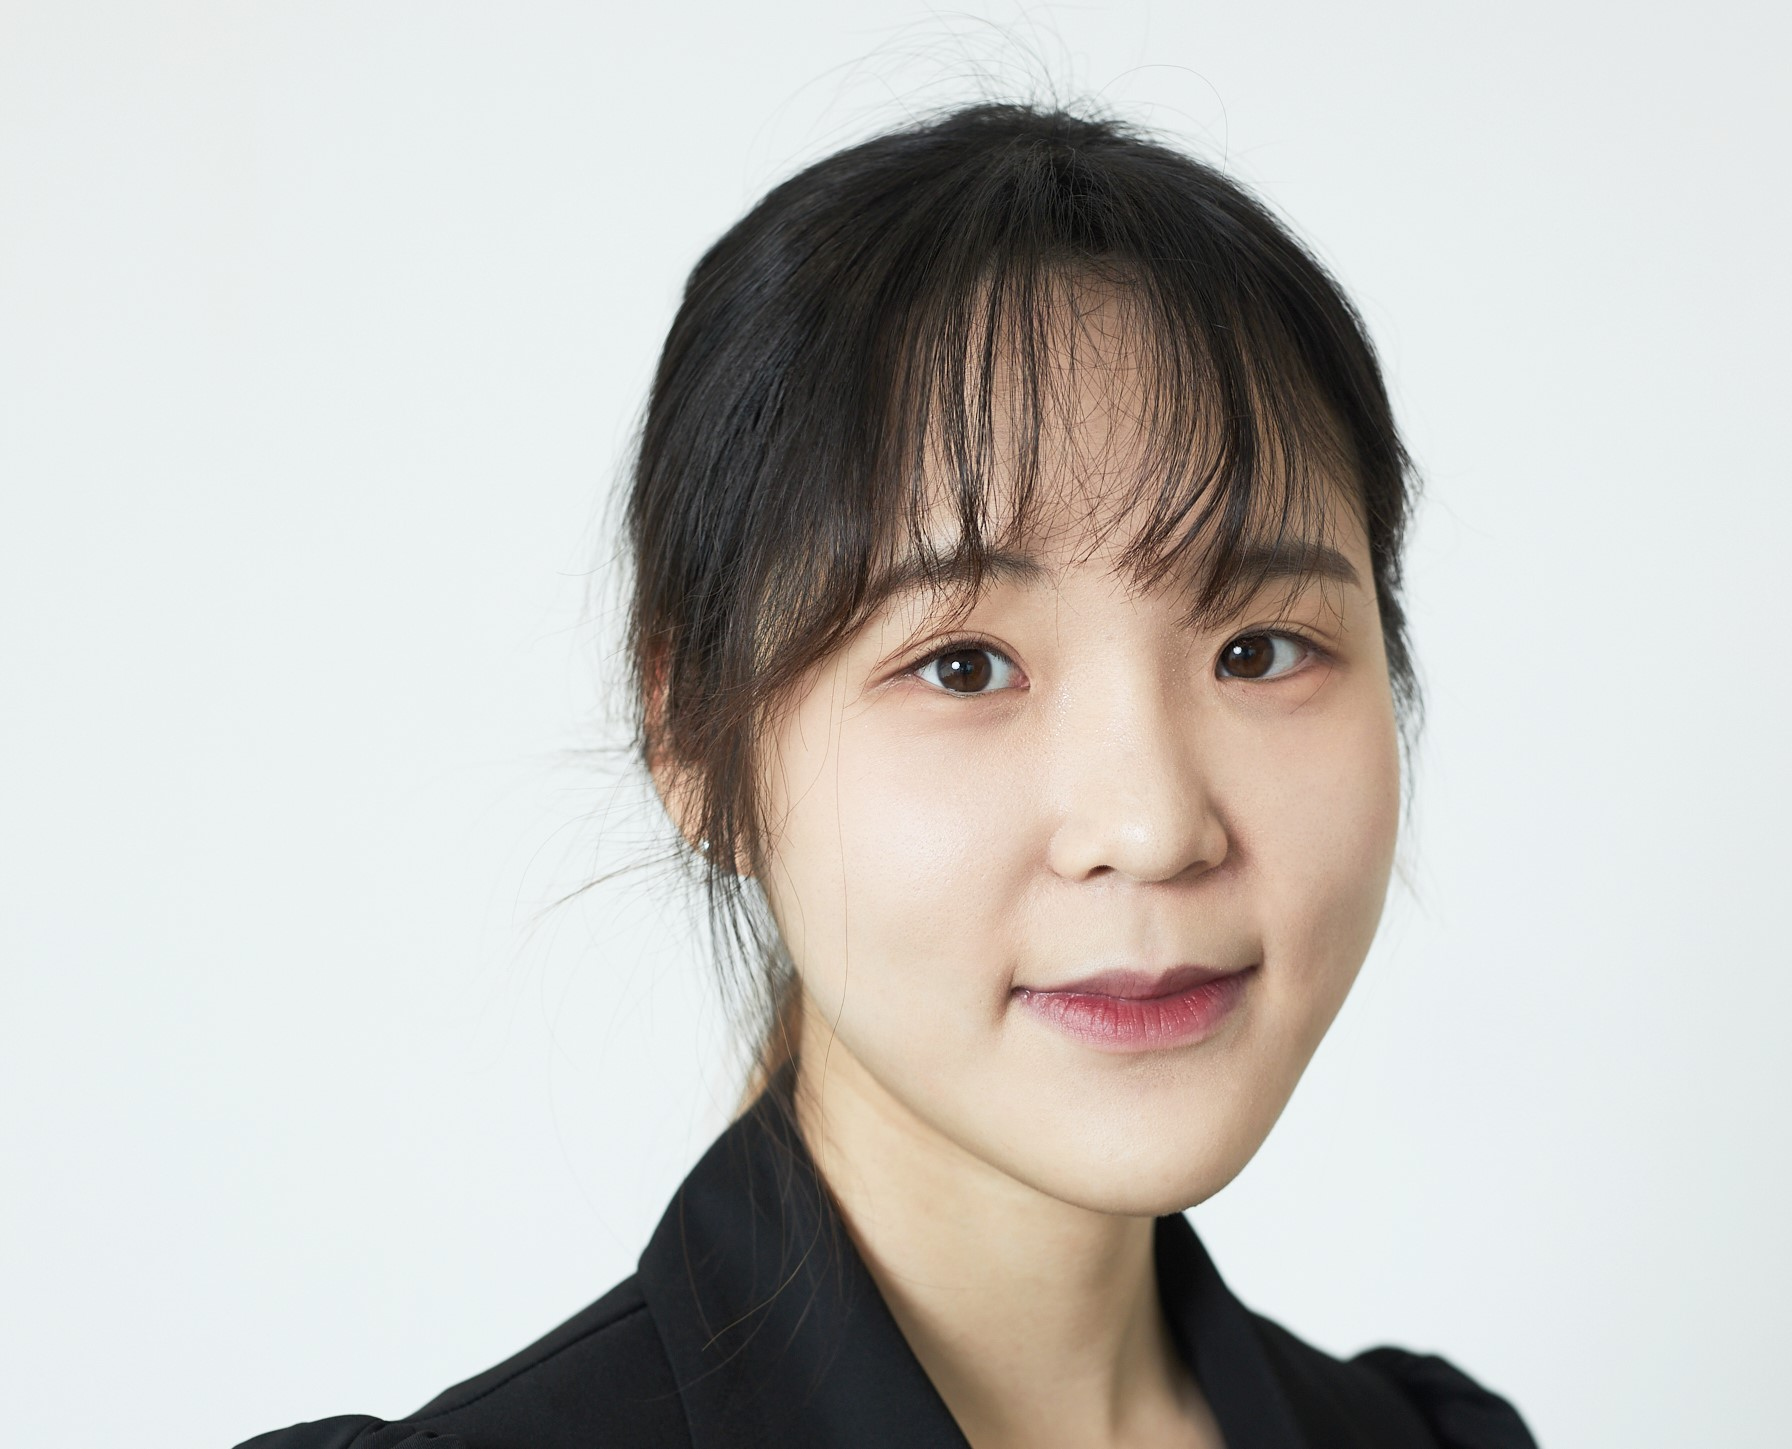 INTERVIEW WITH DIRECTOR LEESEUL OH